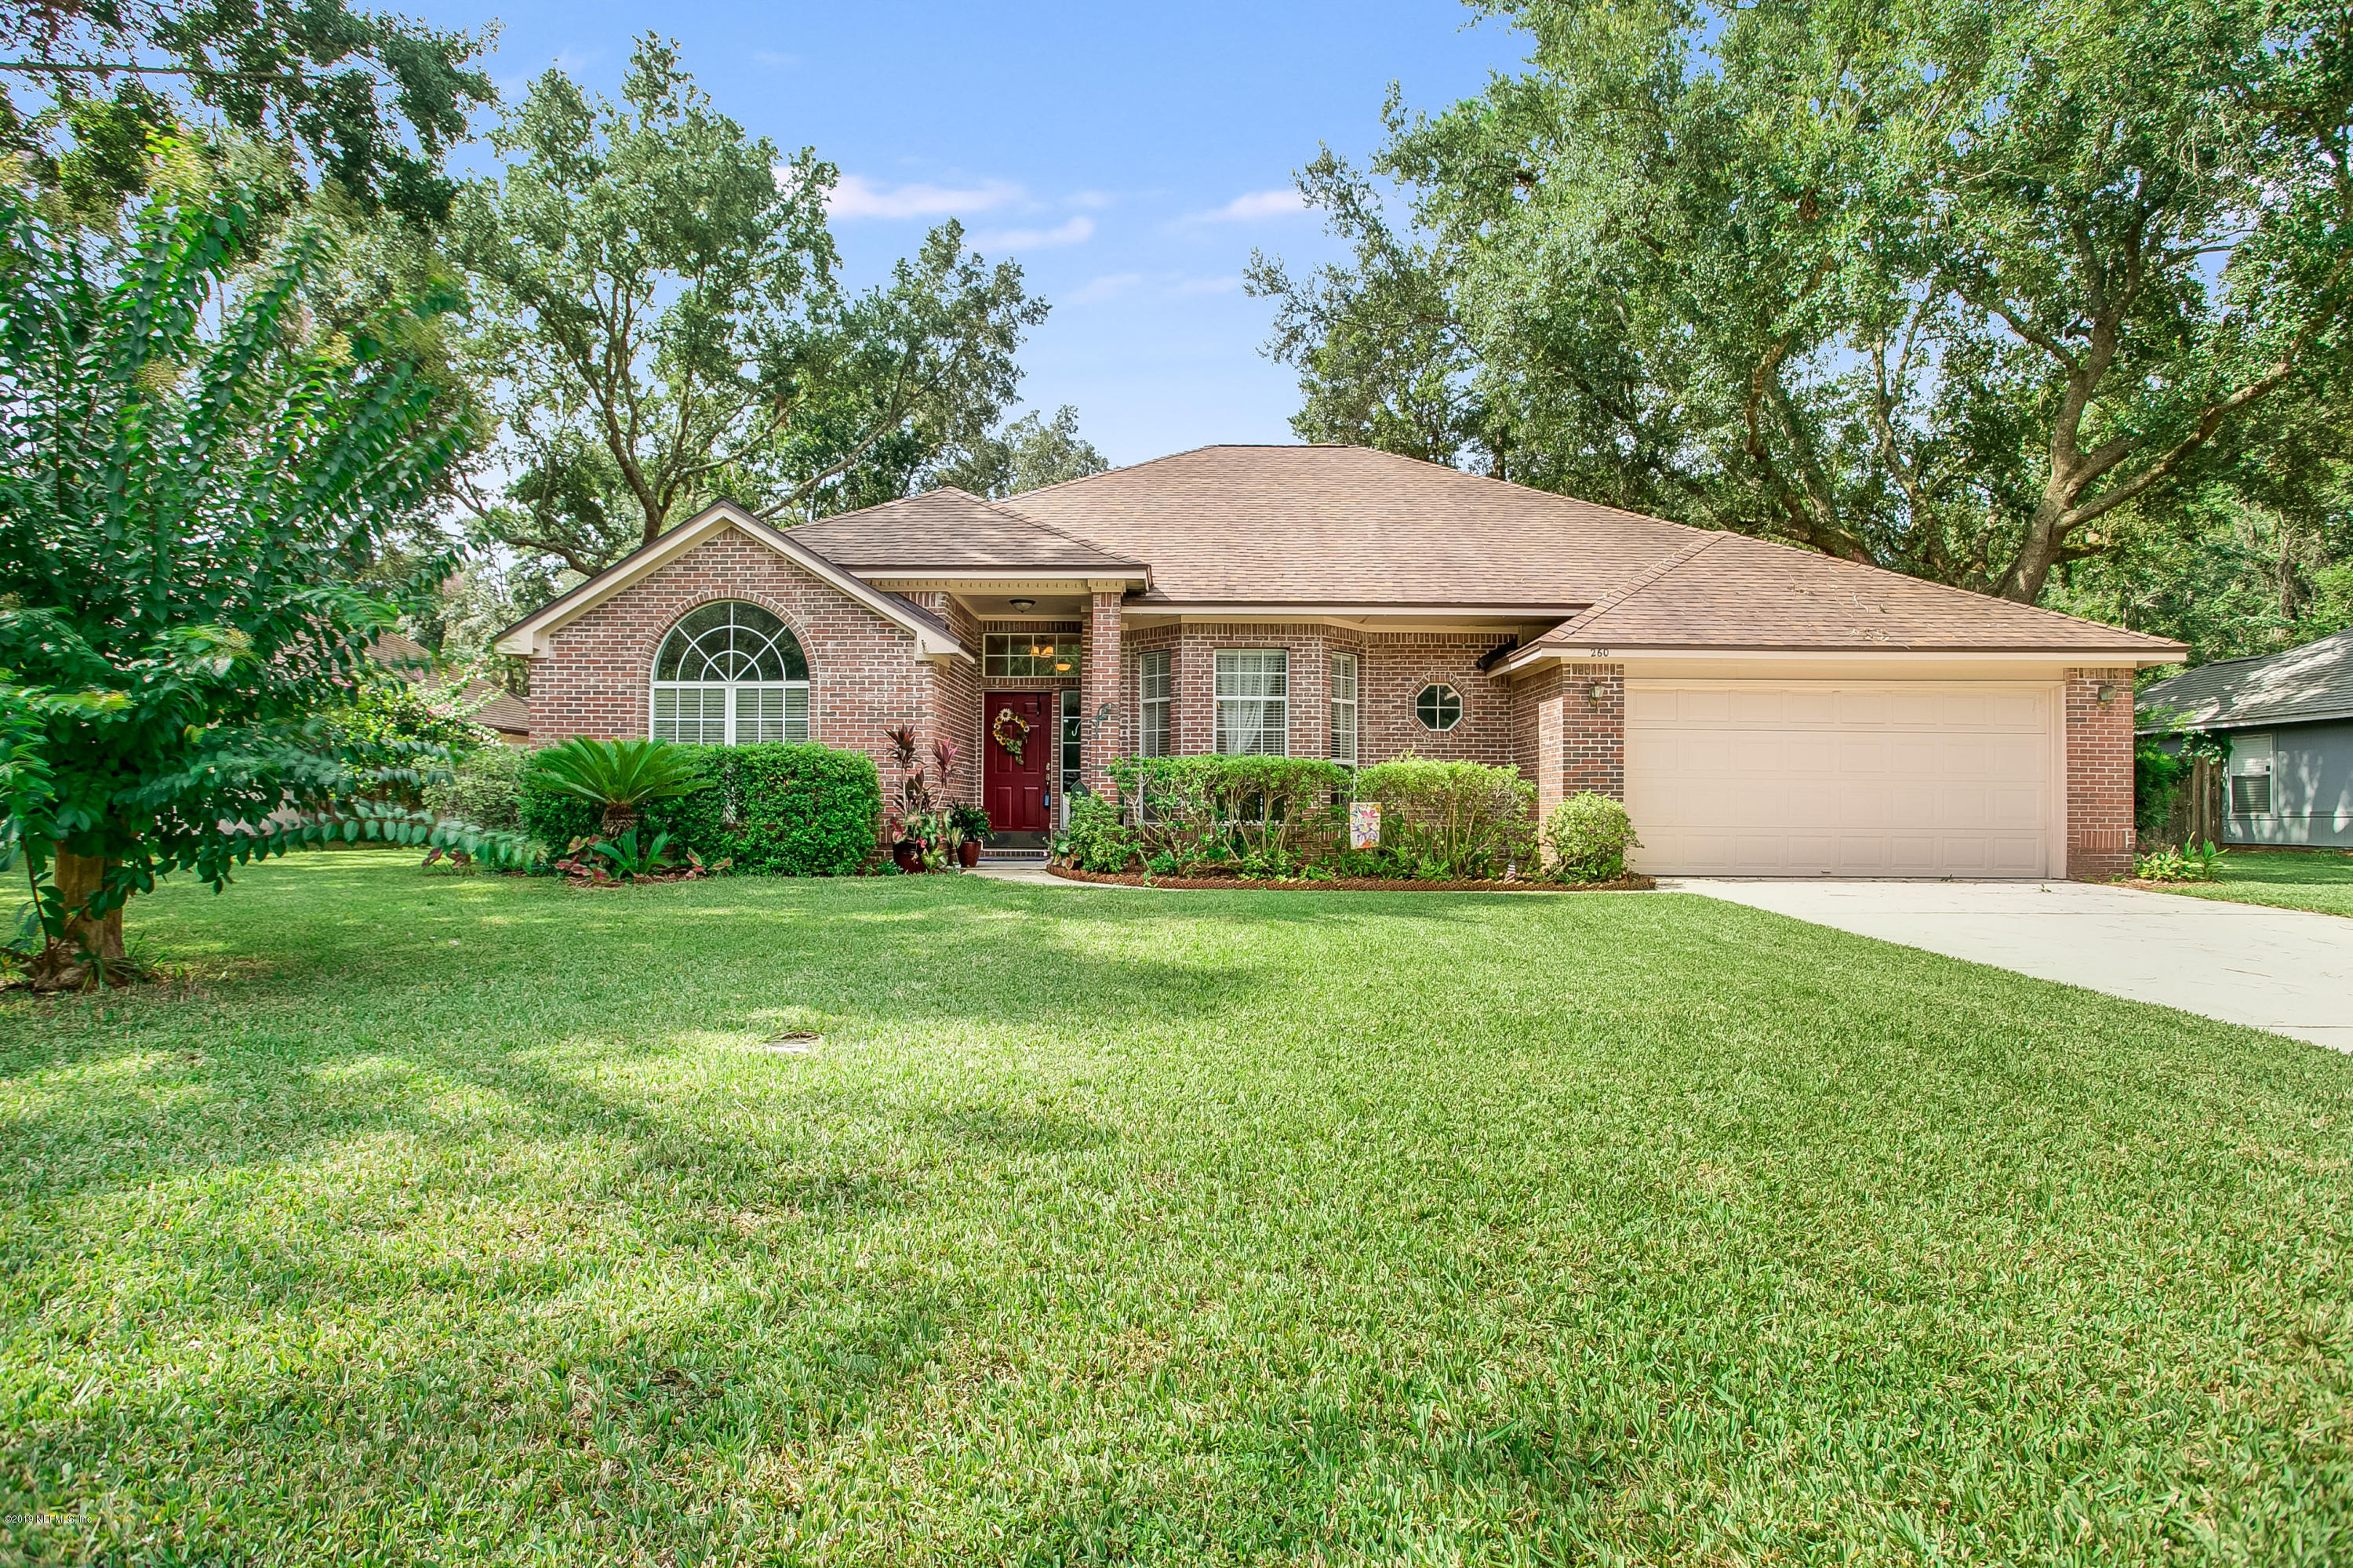 260 CLOVER, JACKSONVILLE, FLORIDA 32259, 3 Bedrooms Bedrooms, ,2 BathroomsBathrooms,Residential - single family,For sale,CLOVER,1011111